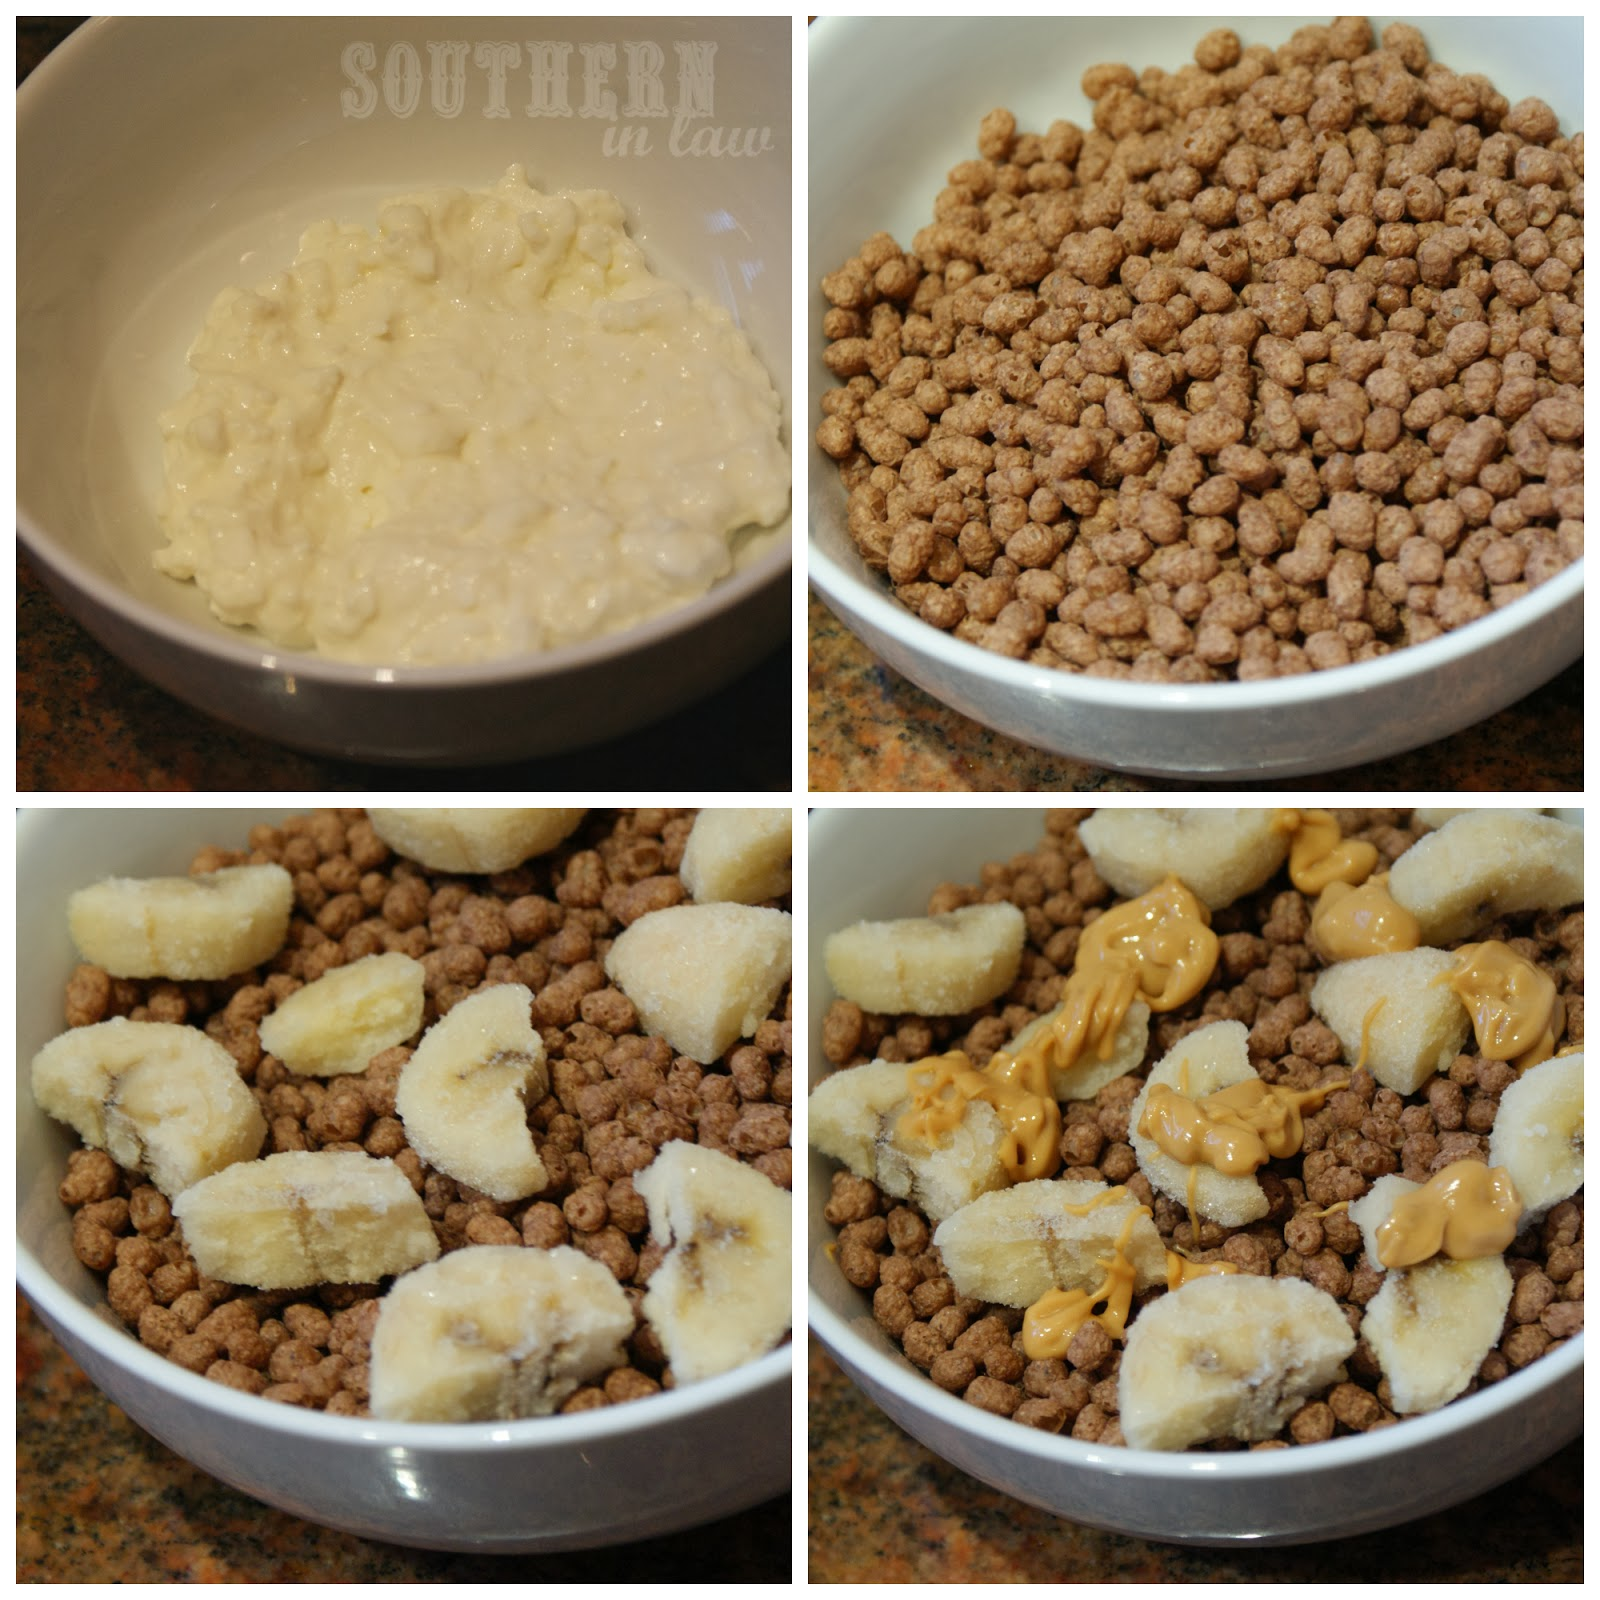 Cocoa Puffs Cereal Mess - Peanut Butter Cottage Cheese Banana - Aldi Gluten Free Cereal Review